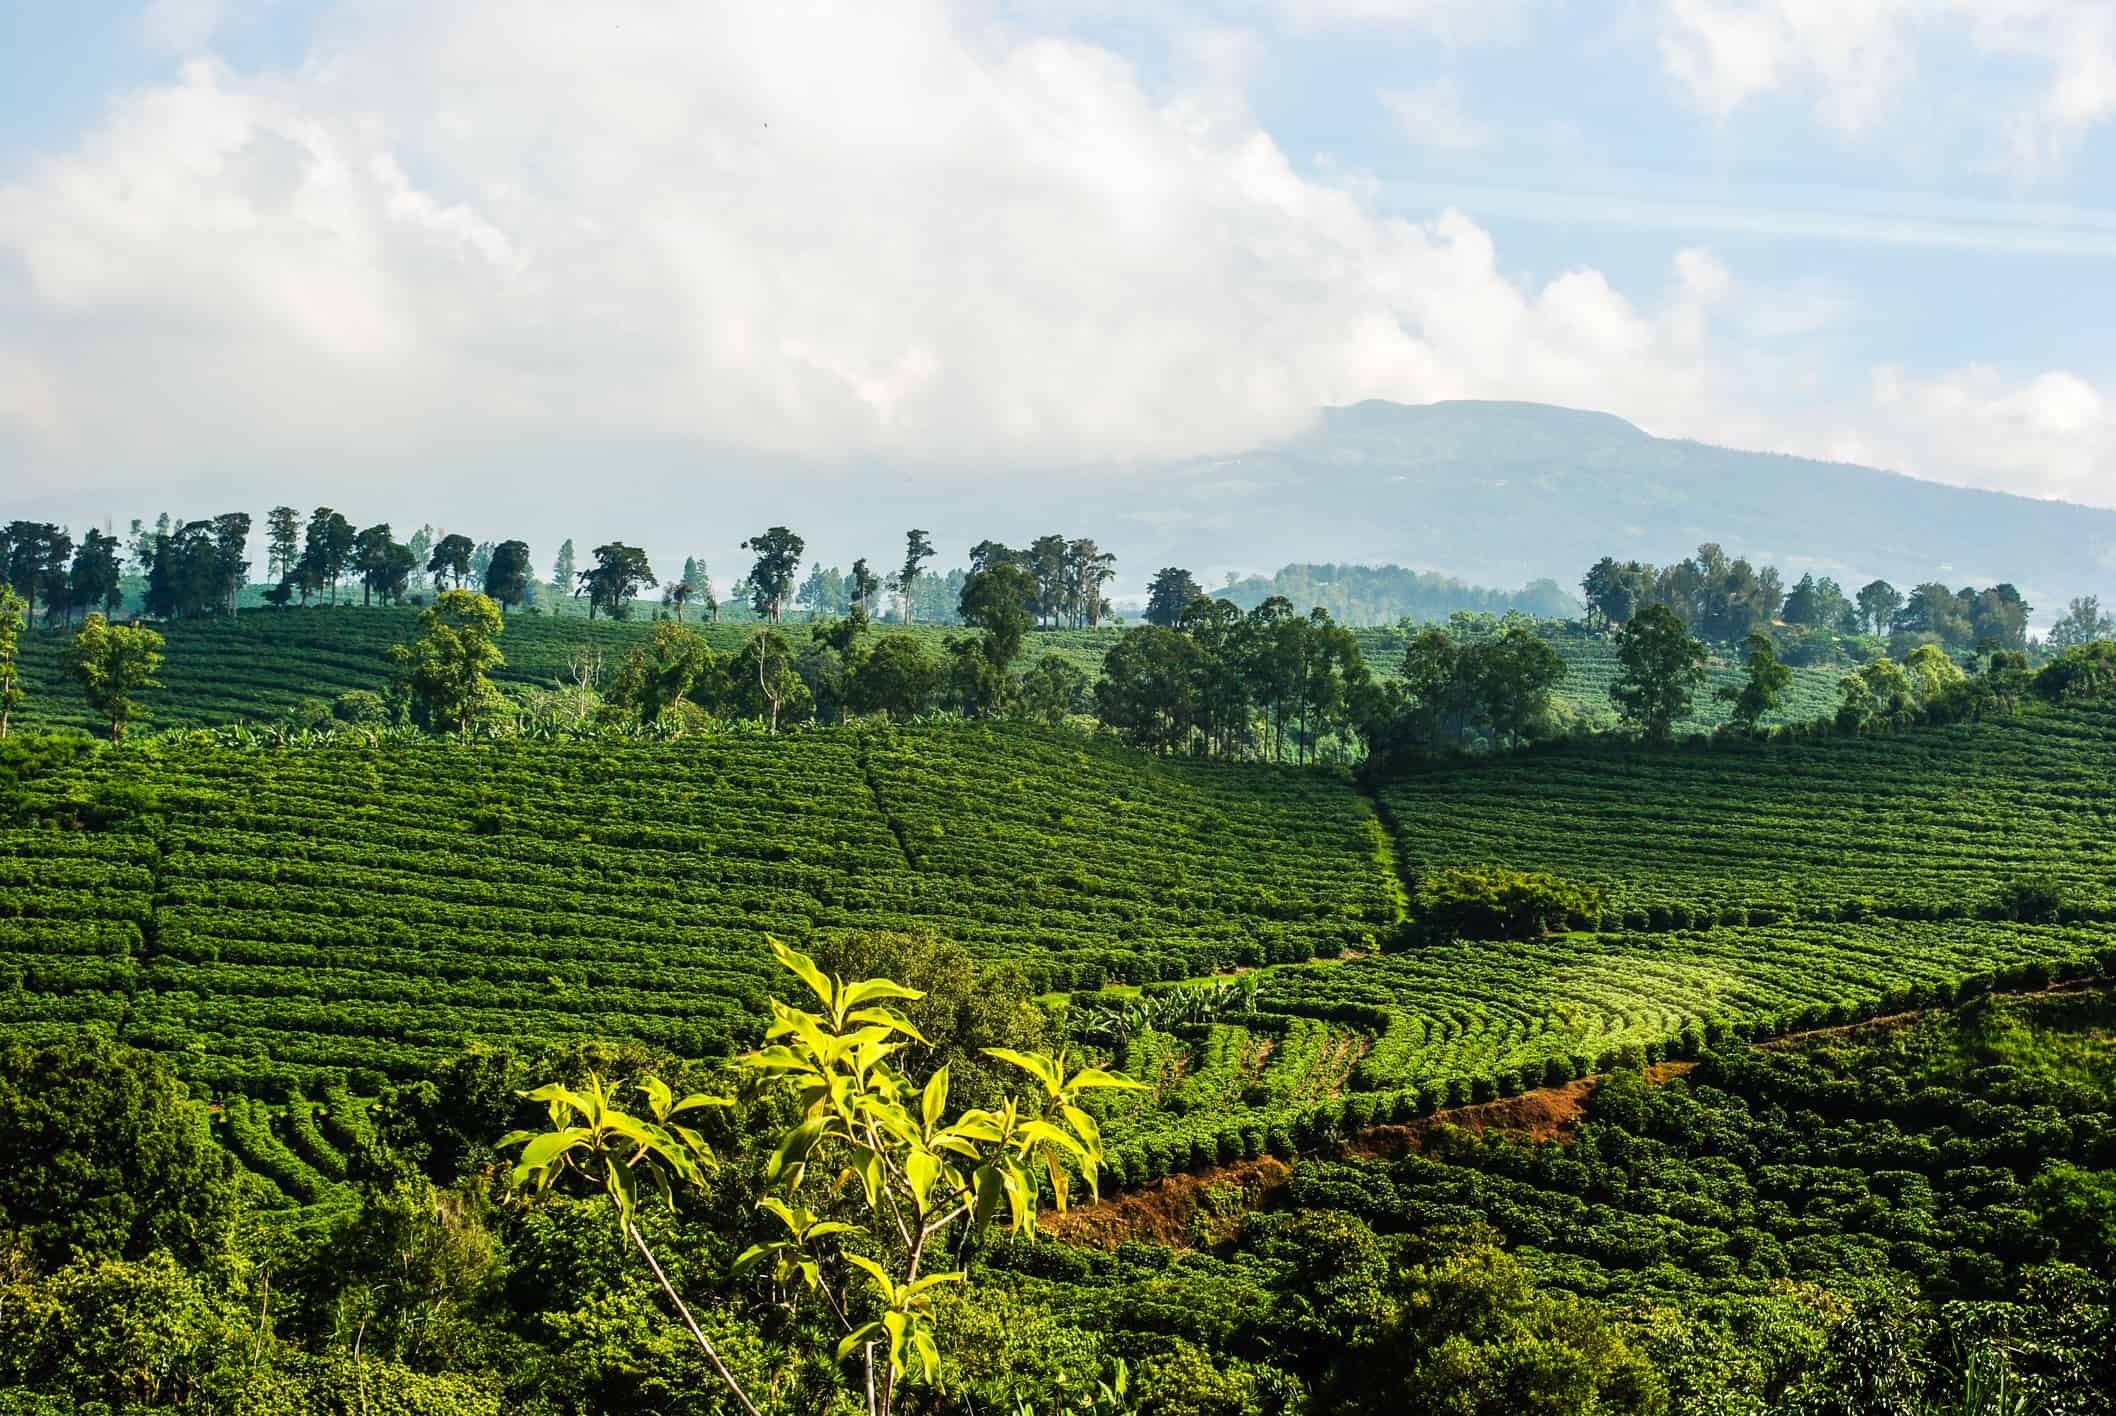 Photogrpah of a Costa Rican coffee plantation located high in the mountains.  Example of intensive agricultural practice.